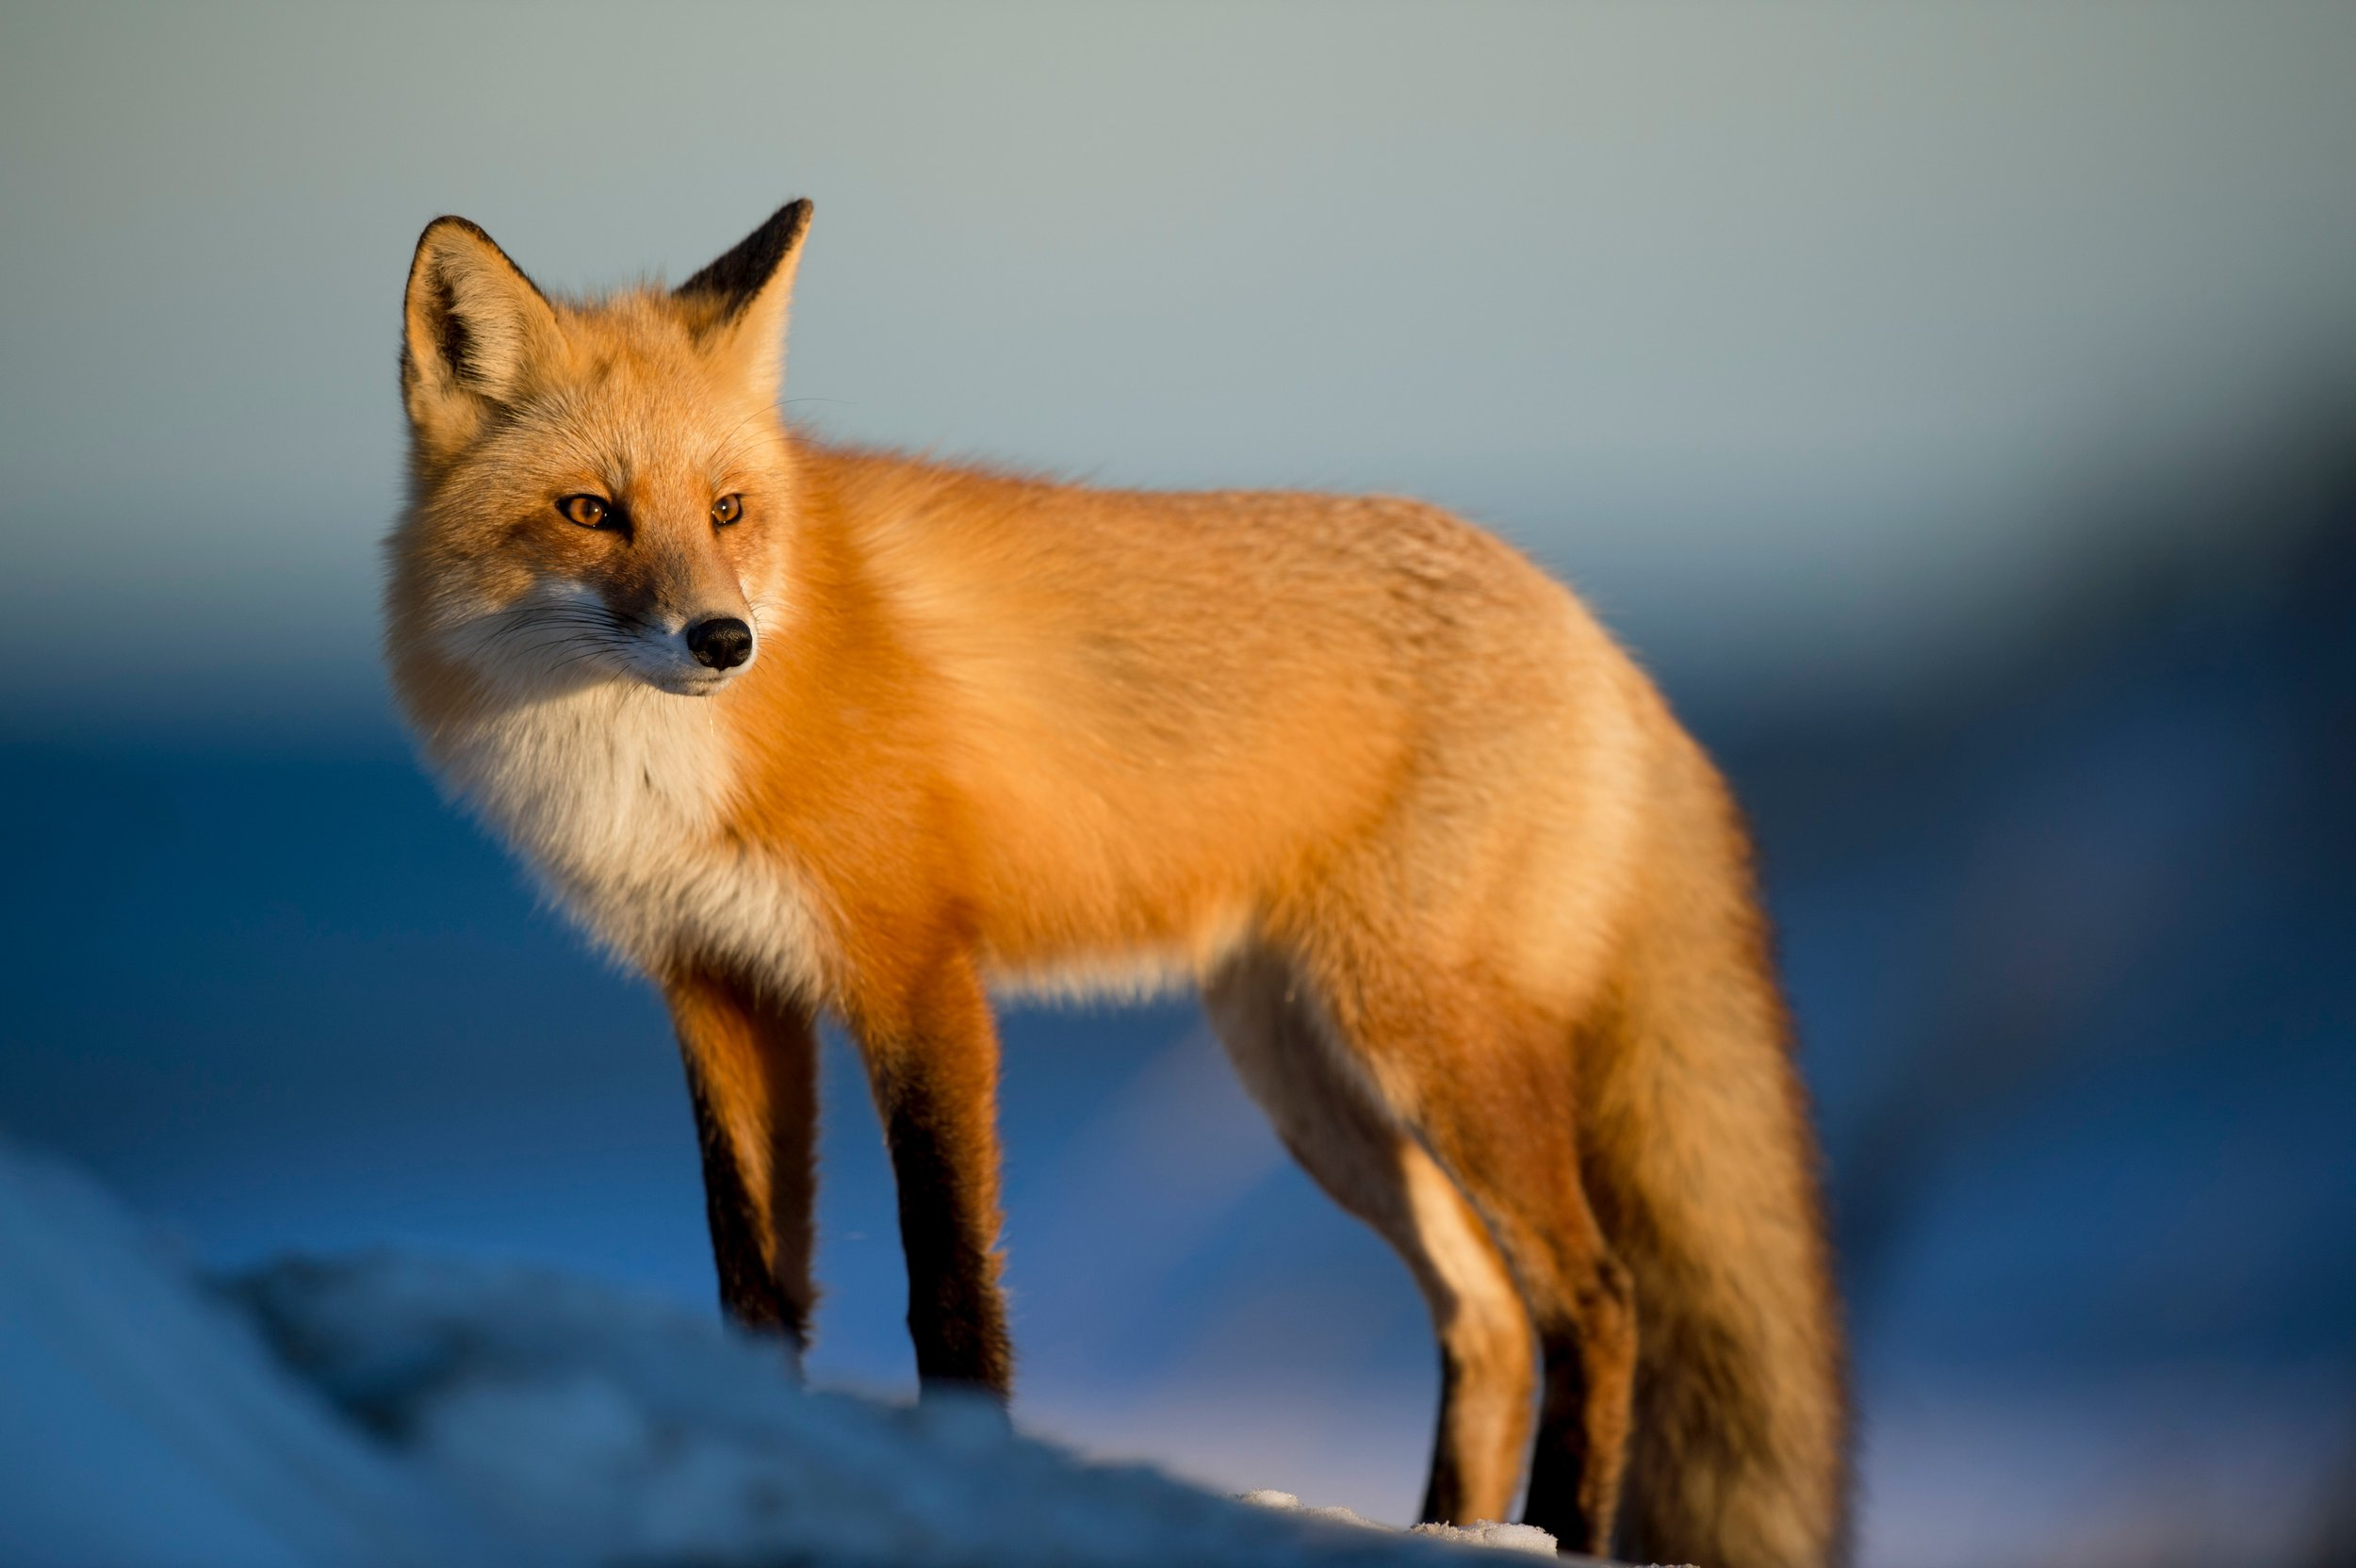 Photo of a Red Fox by Ray Hennessy